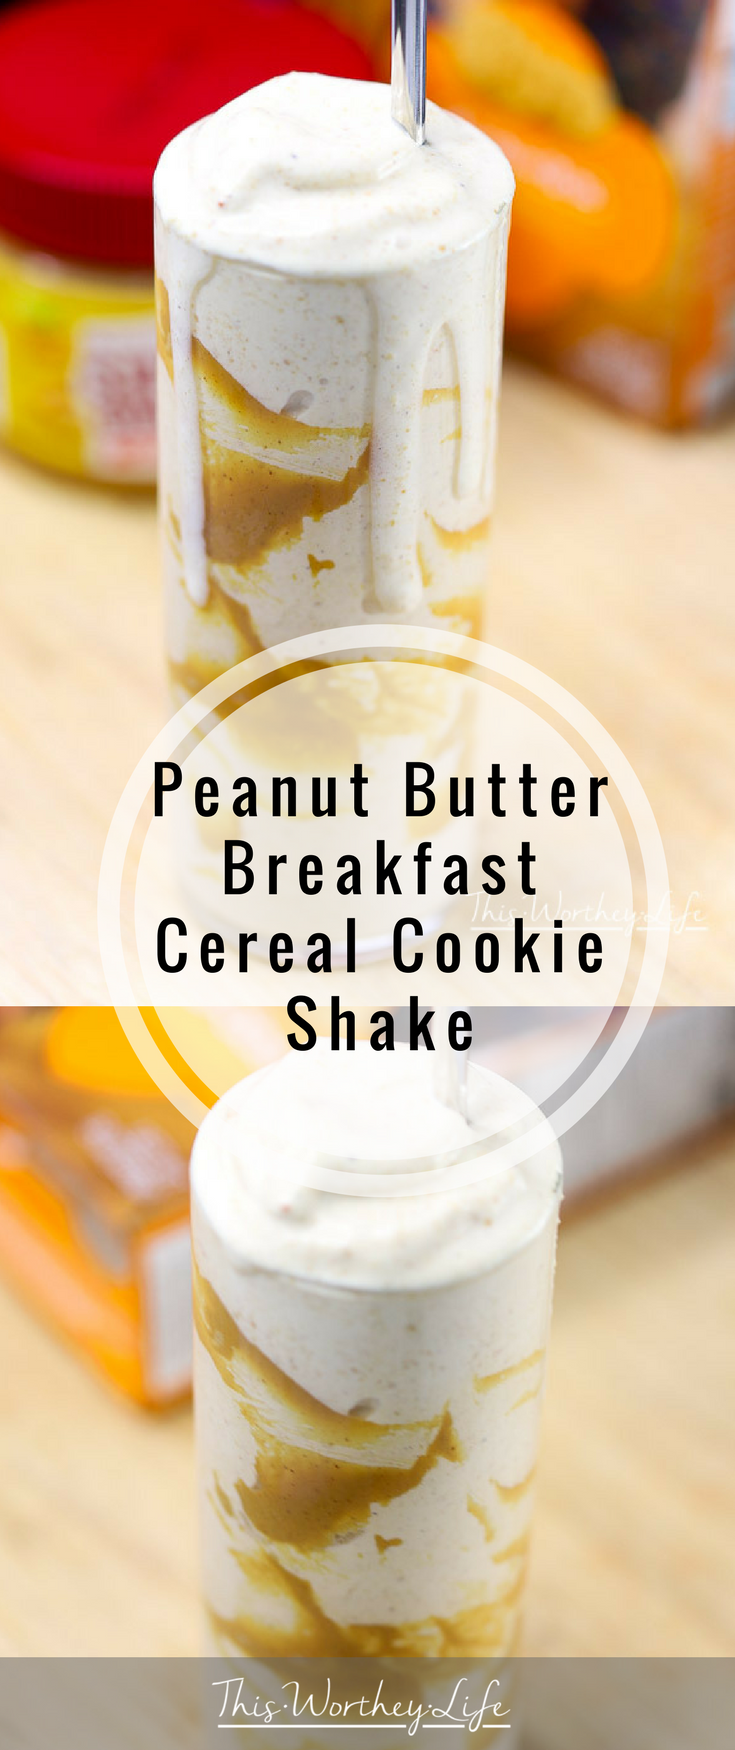 Who says breakfast has to be boring? With some of your favorite ice-cream, Girl Scout Do-si-dos cookies, and cereal, you can have a fun and filling breakfast shake! Try our Peanut Butter Breakfast Cereal Cookie Milkshake- get the recipe on our food blog!